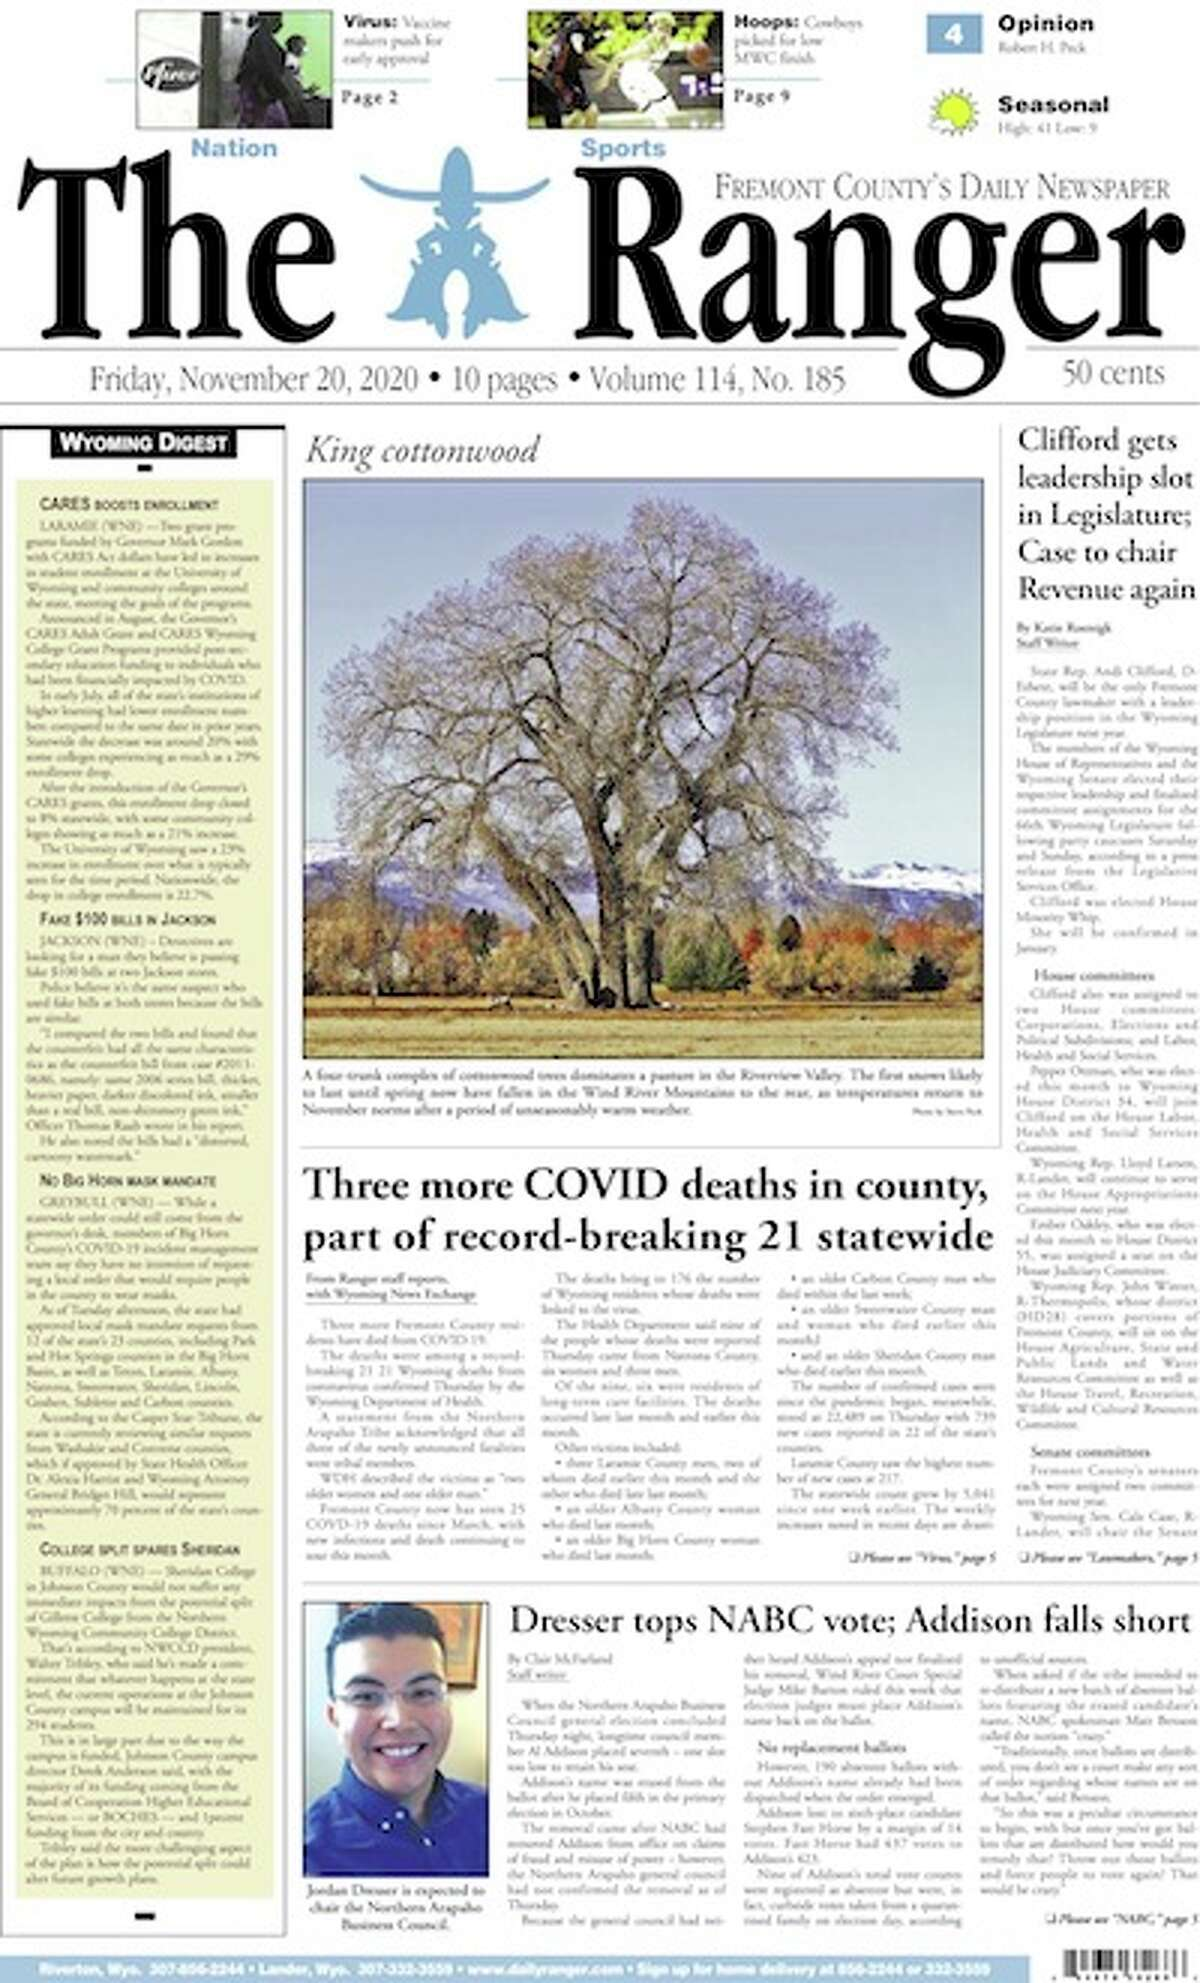 The front page of the Ranger - a family-owned daily newspaper serving Riverton, Lander and Fremont County, Wyoming, since 1949 - on Nov. 24, 2020.